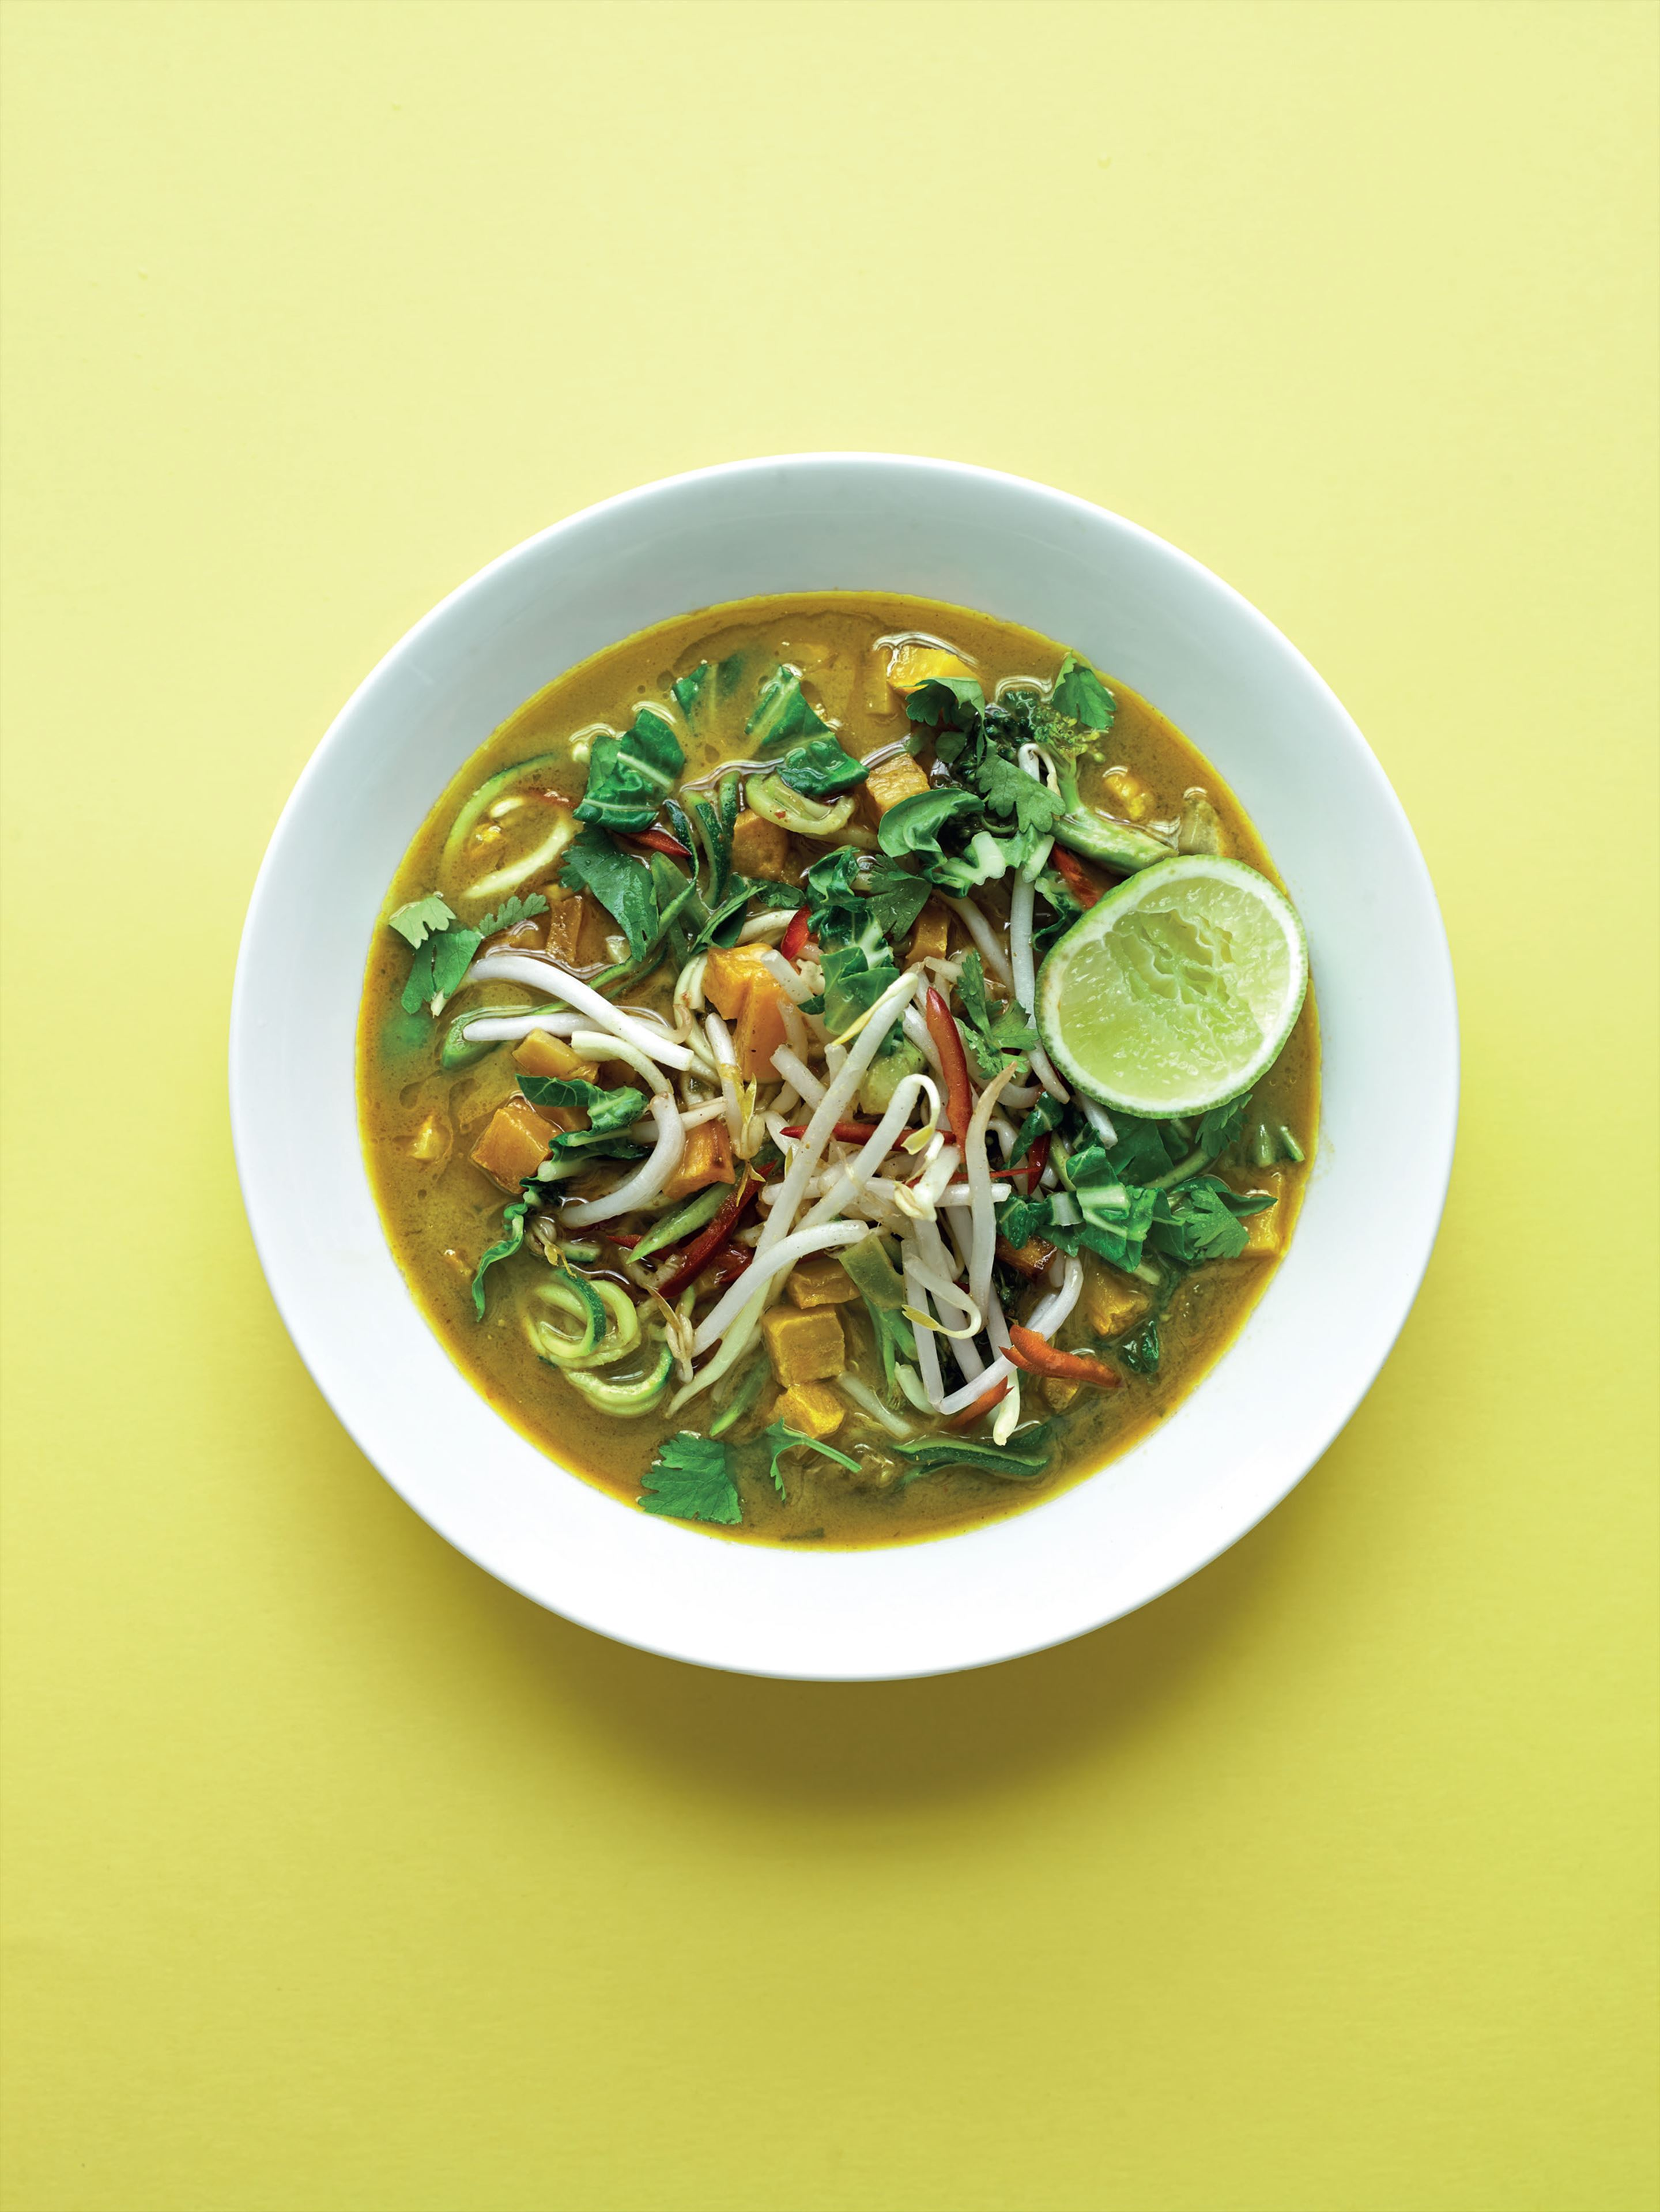 Malaysian laksa with courgette 'noodles'